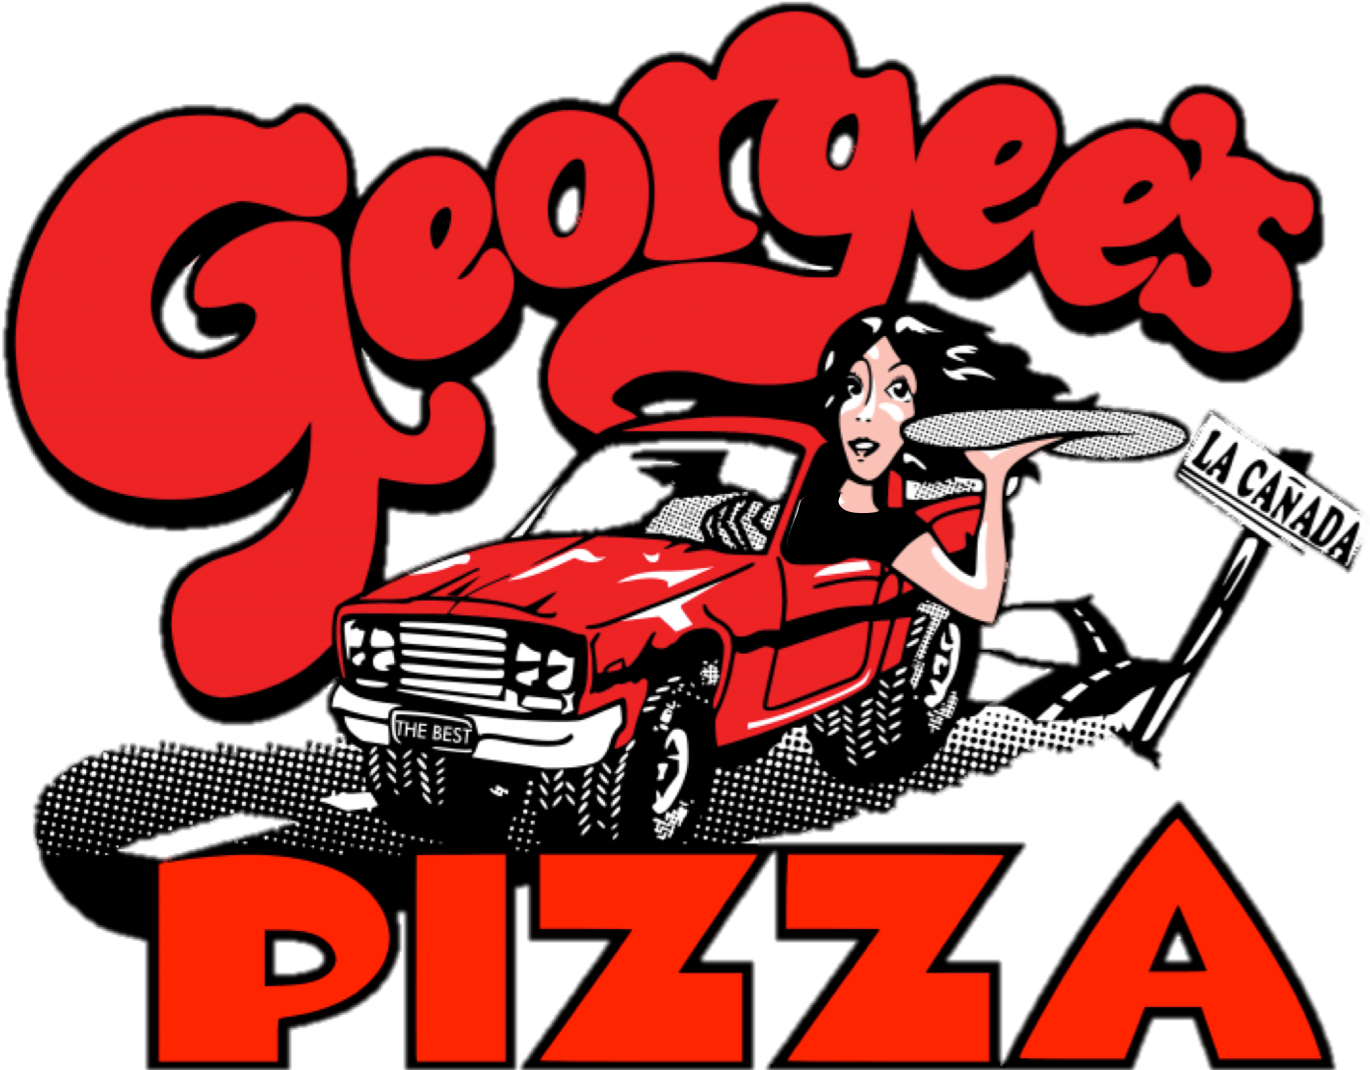 Georgee's Pizza - La Canada's Best Pizza Since 1980